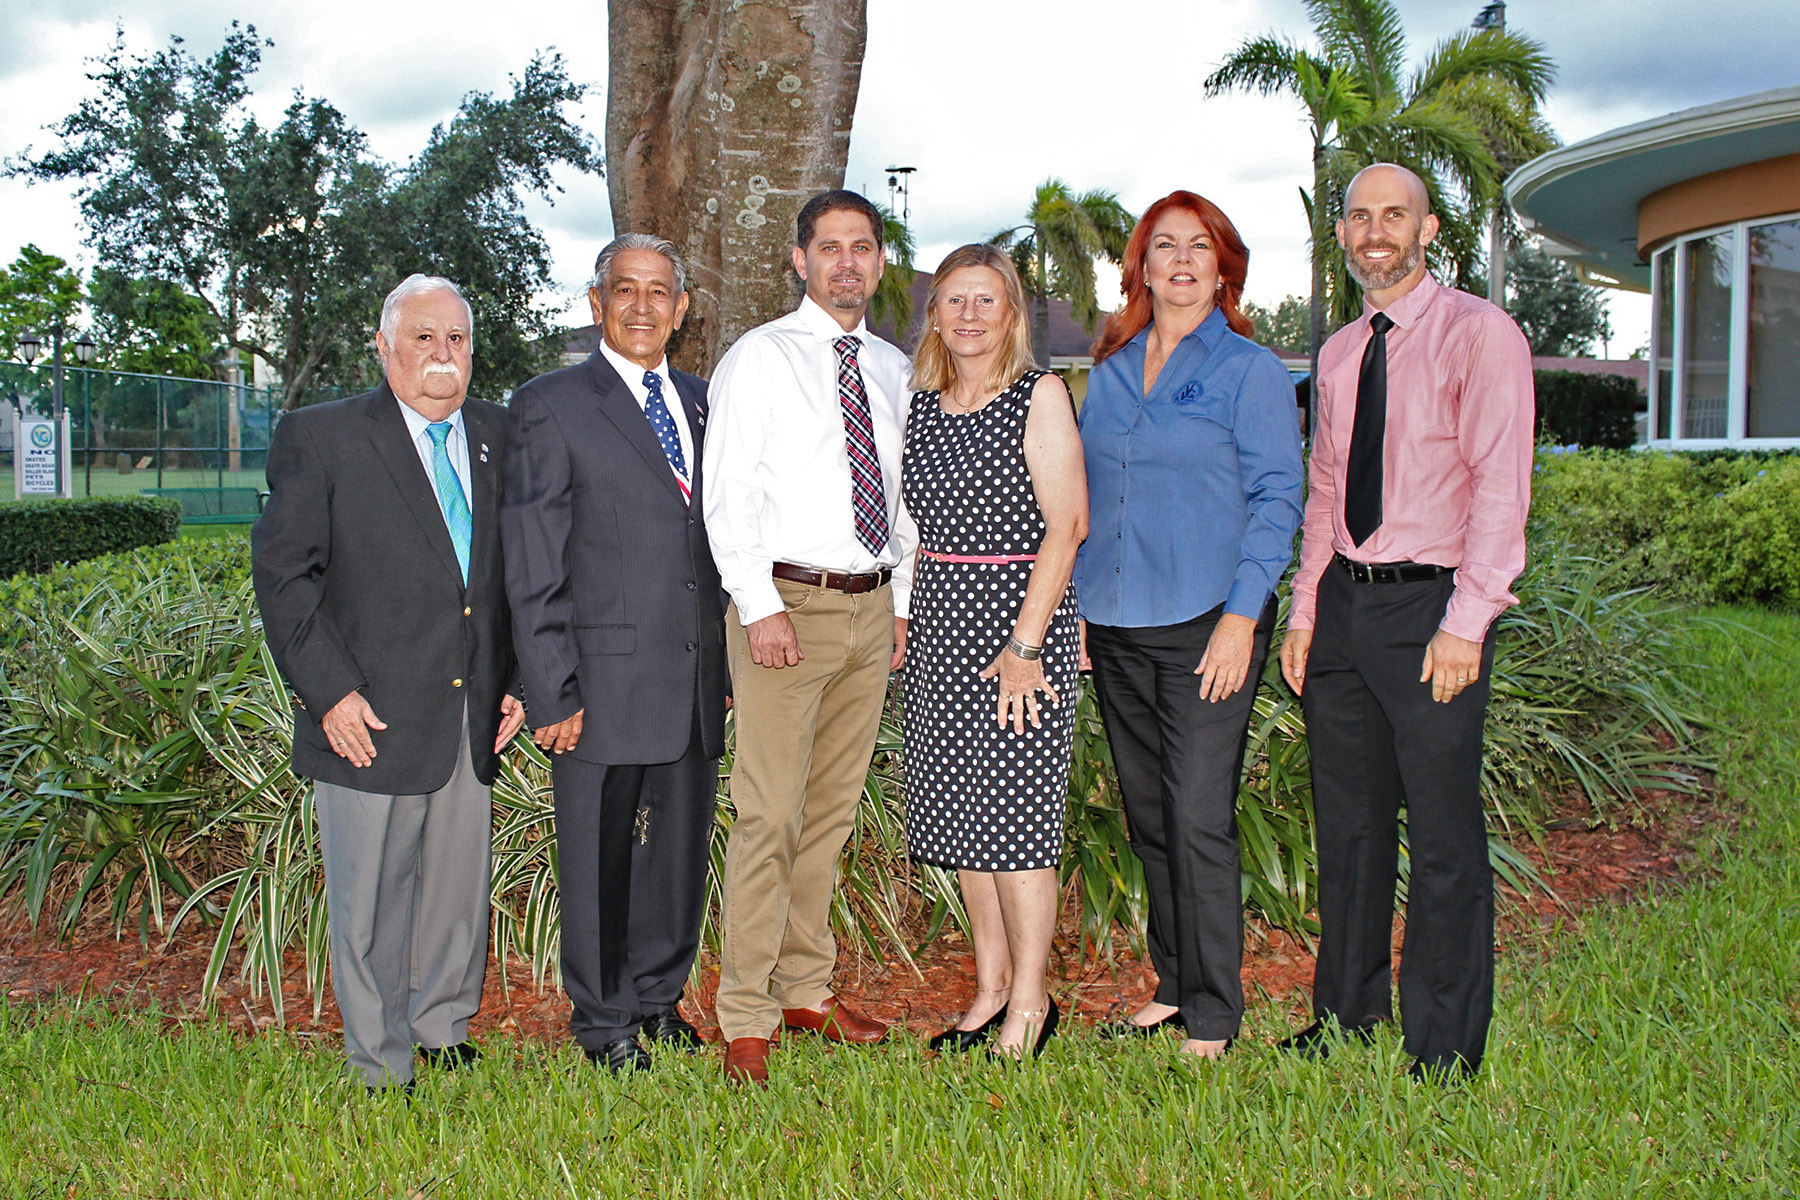 Mayor and council members